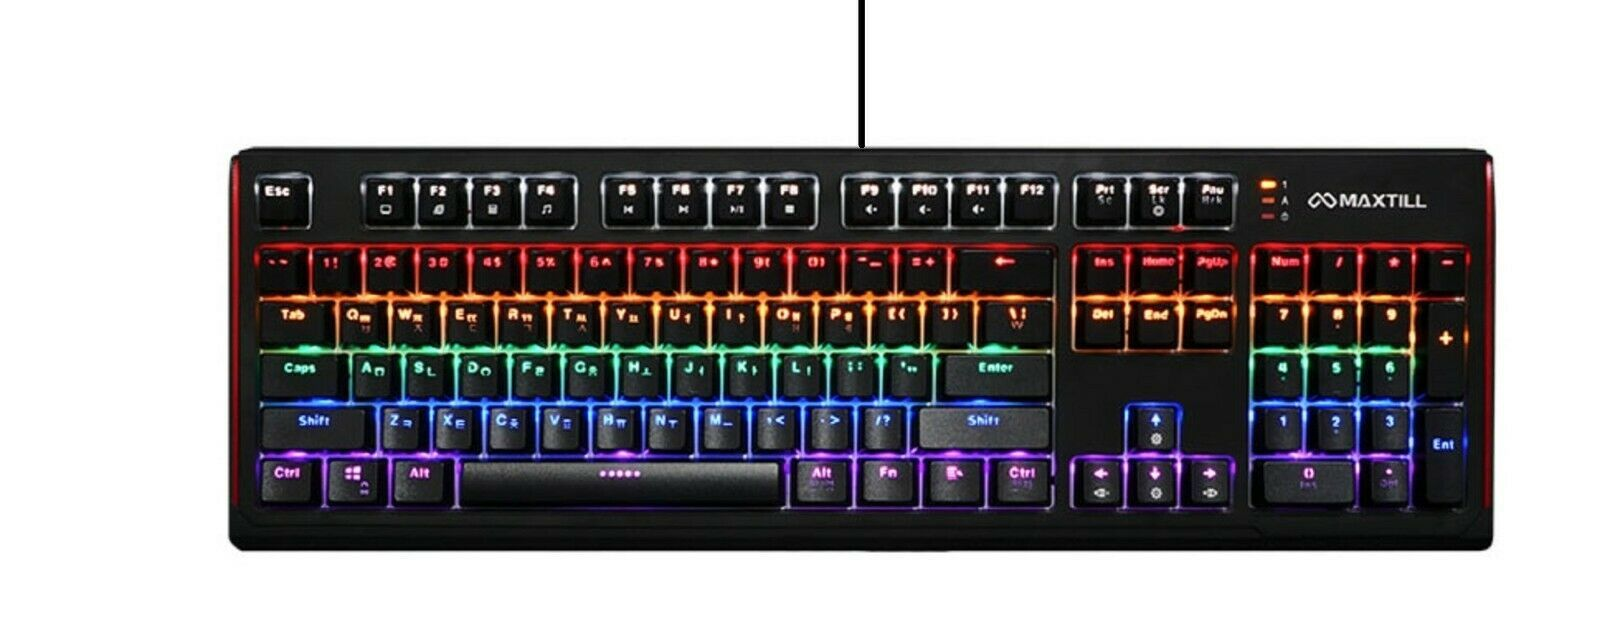 Maxtill G410K Pro Mechanical Gaming Keyboard Jixian Optical Switch USB Wired LED